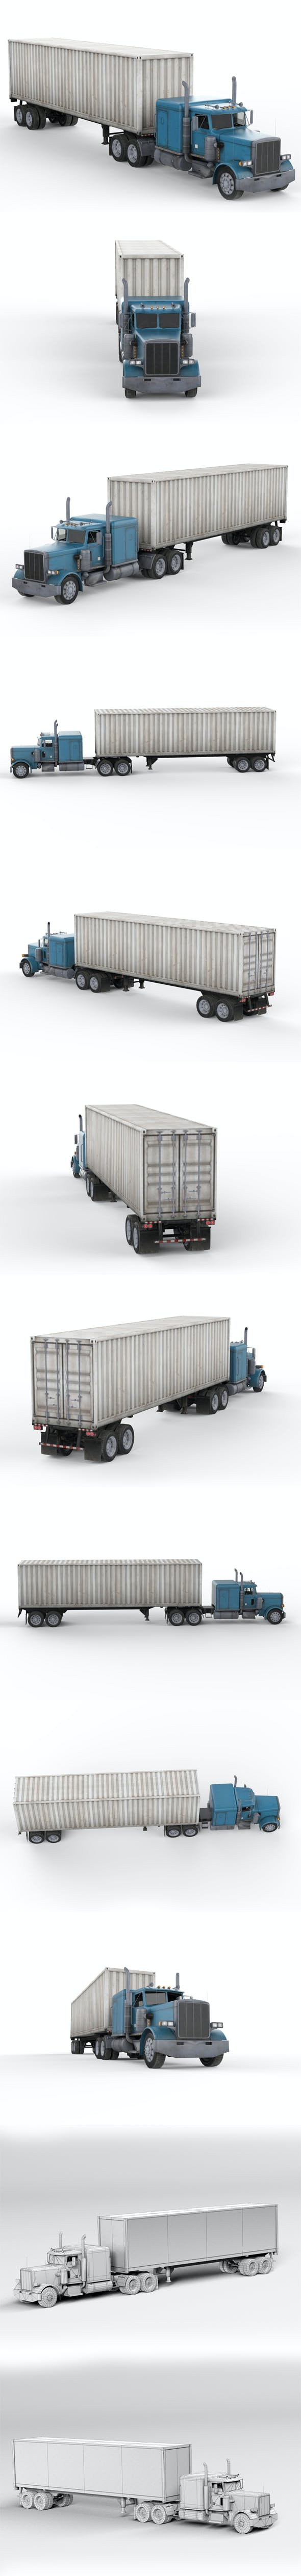 Truck with Semi-Trailer - 3DOcean Item for Sale